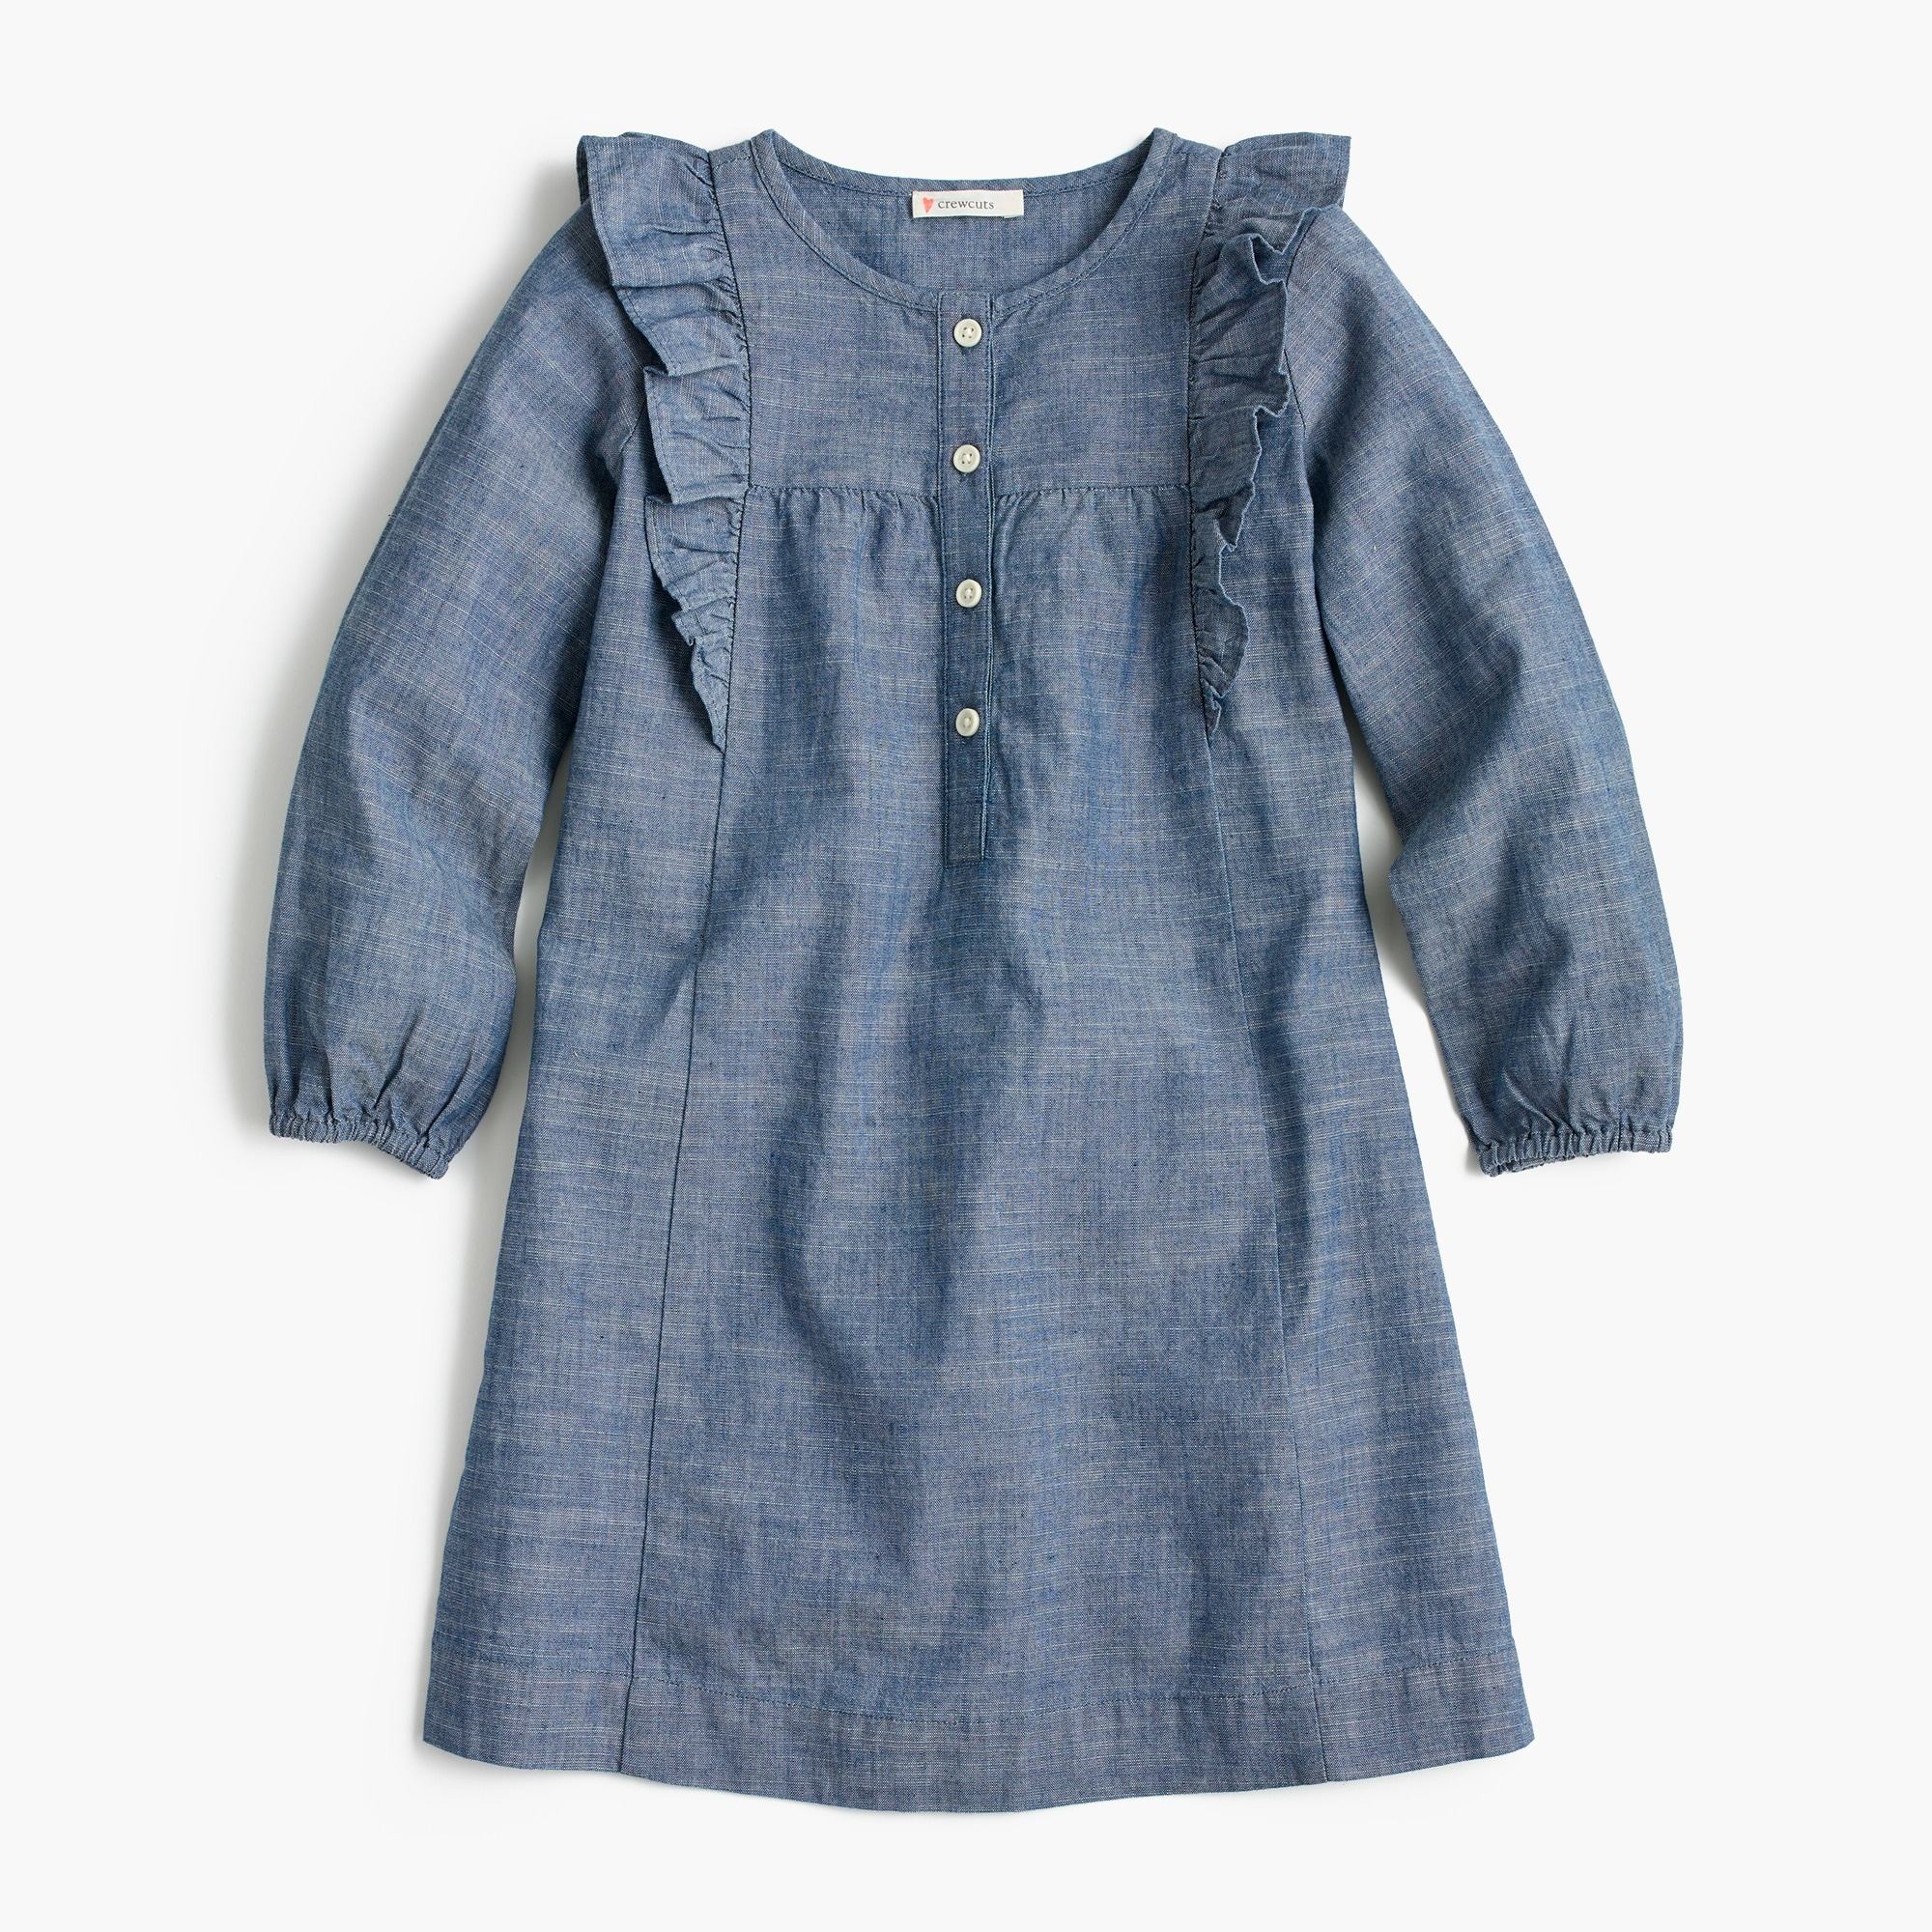 Girls' chambray dress girl new arrivals c